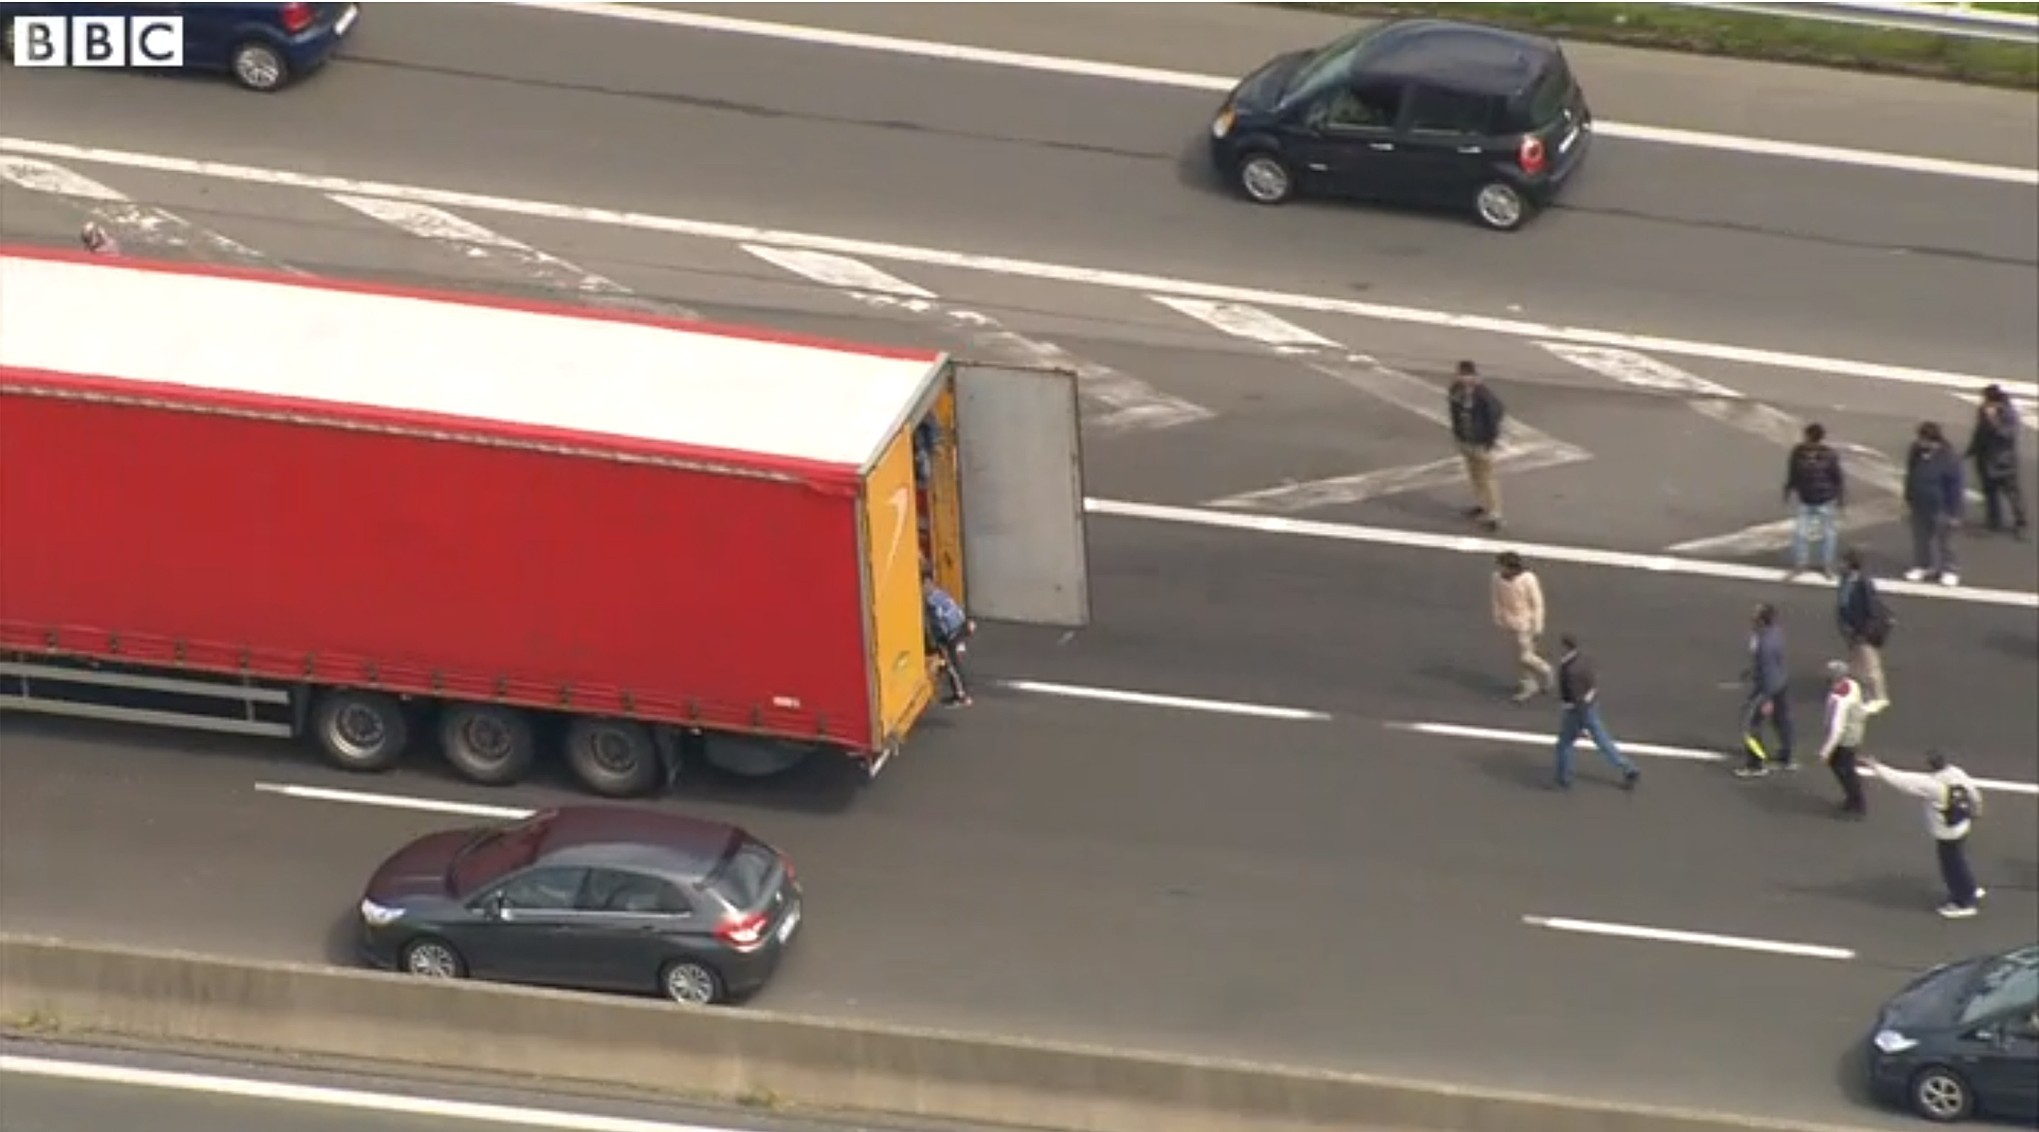 Migrants by the side of a road in Calais attempting to board a lorry as French ferry workers strike. Picture from BBC News.